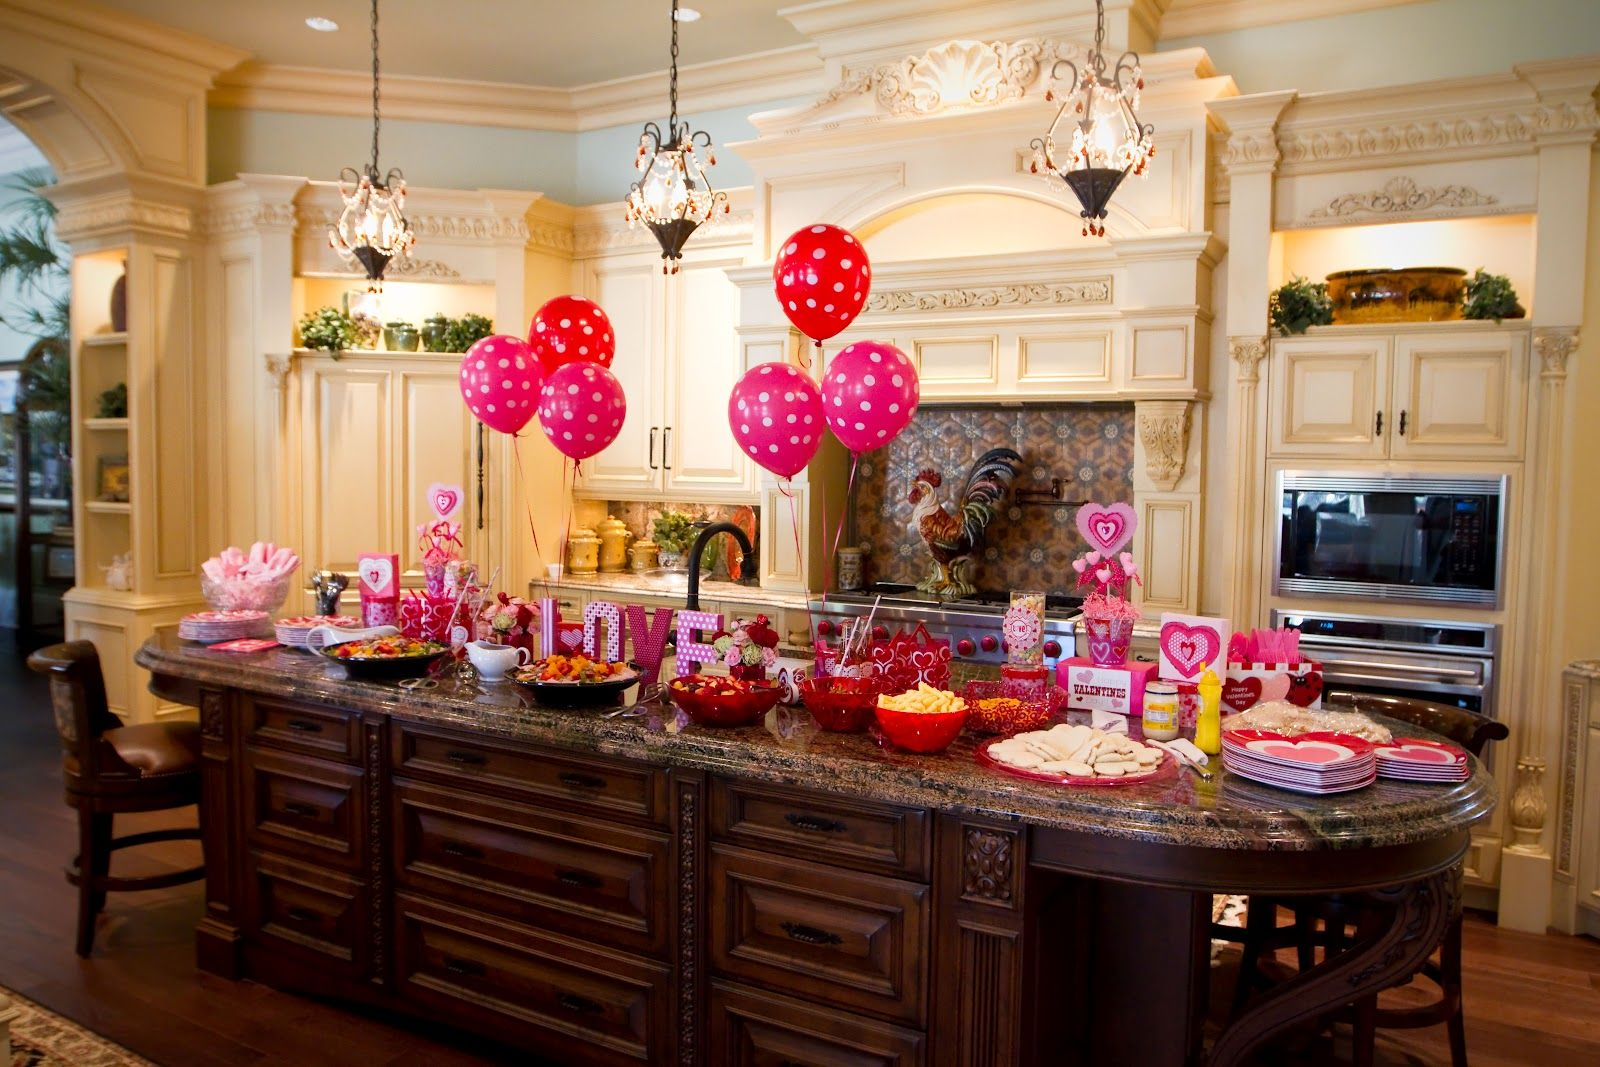 kitchen island centerpiece metal cart party food display on with balloons